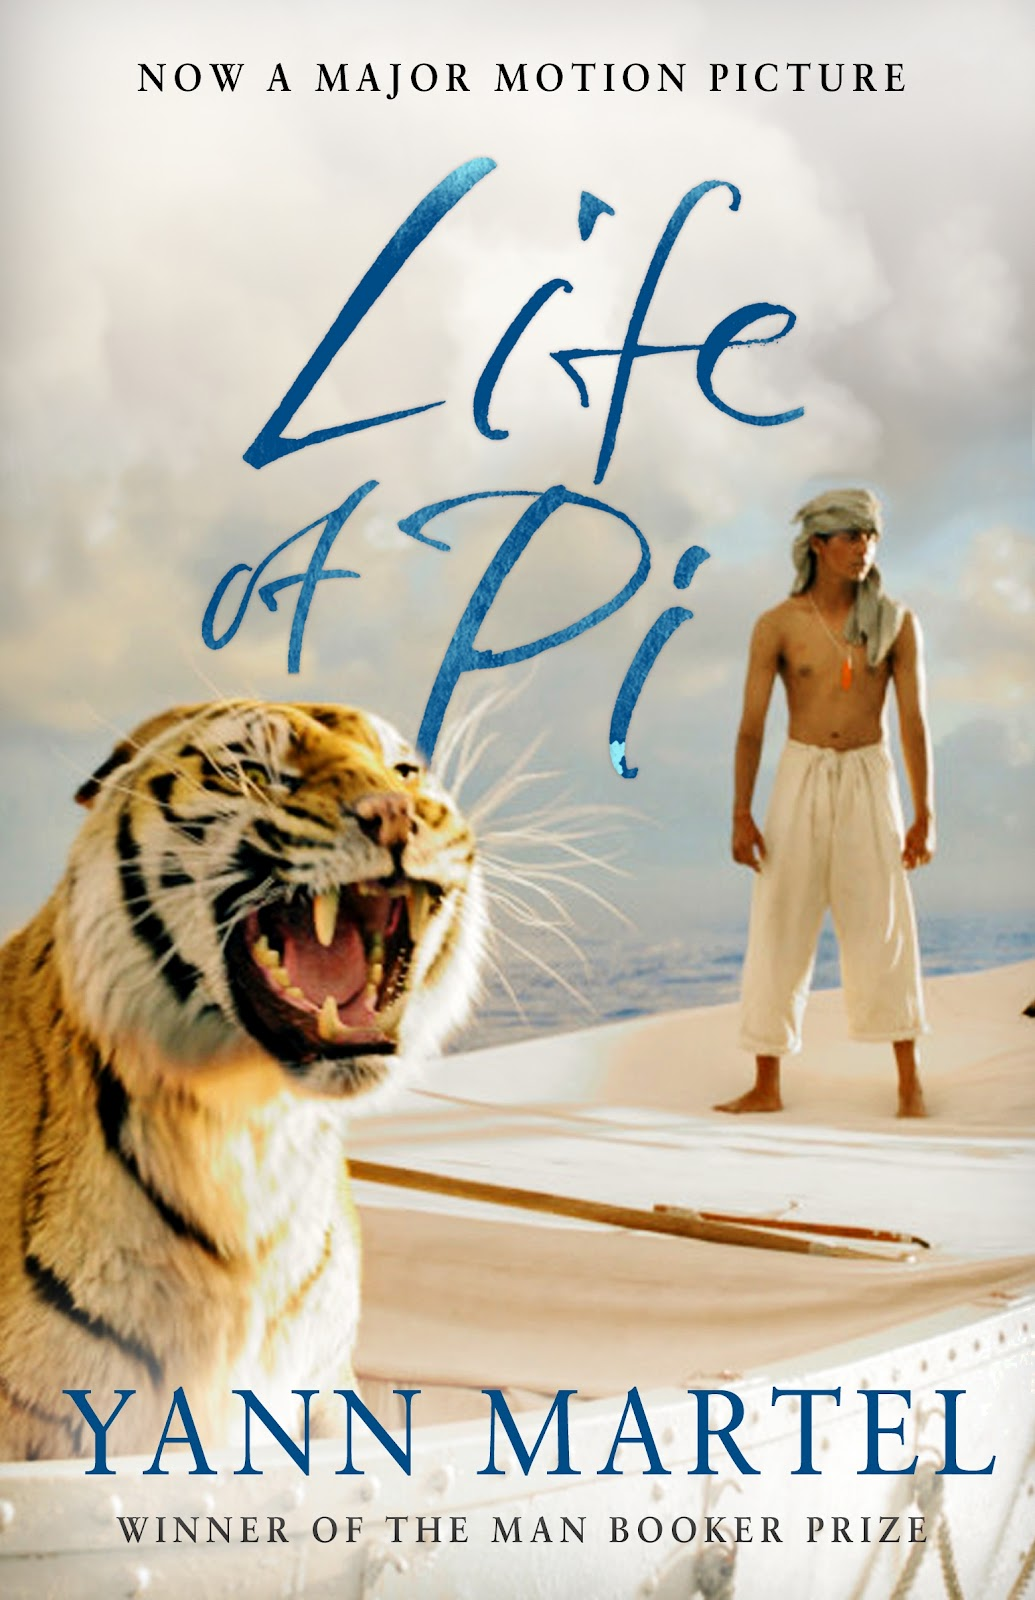 existential philosophy in life of pi a novel by yann martel Martel wrote life of pi after a backpacking trip to india in 1996 he had already written a novel that failed to inspire him, and he felt aimless and depressed: i was in need of a story he had already written a novel that failed to inspire him, and he felt aimless and depressed: i was in need of a story.